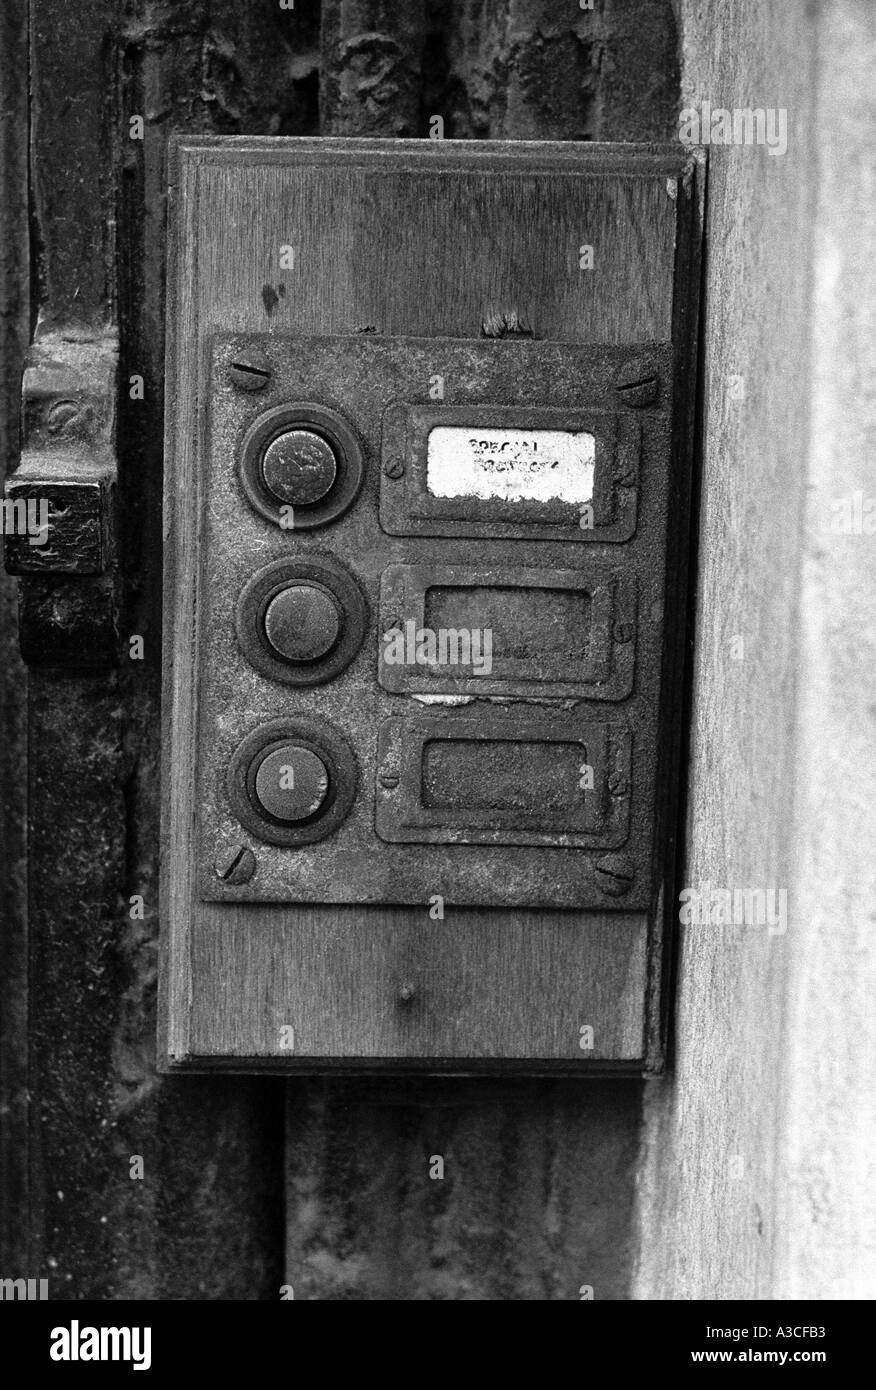 Old door bell pushes on london flats about to be demolished - Stock Image